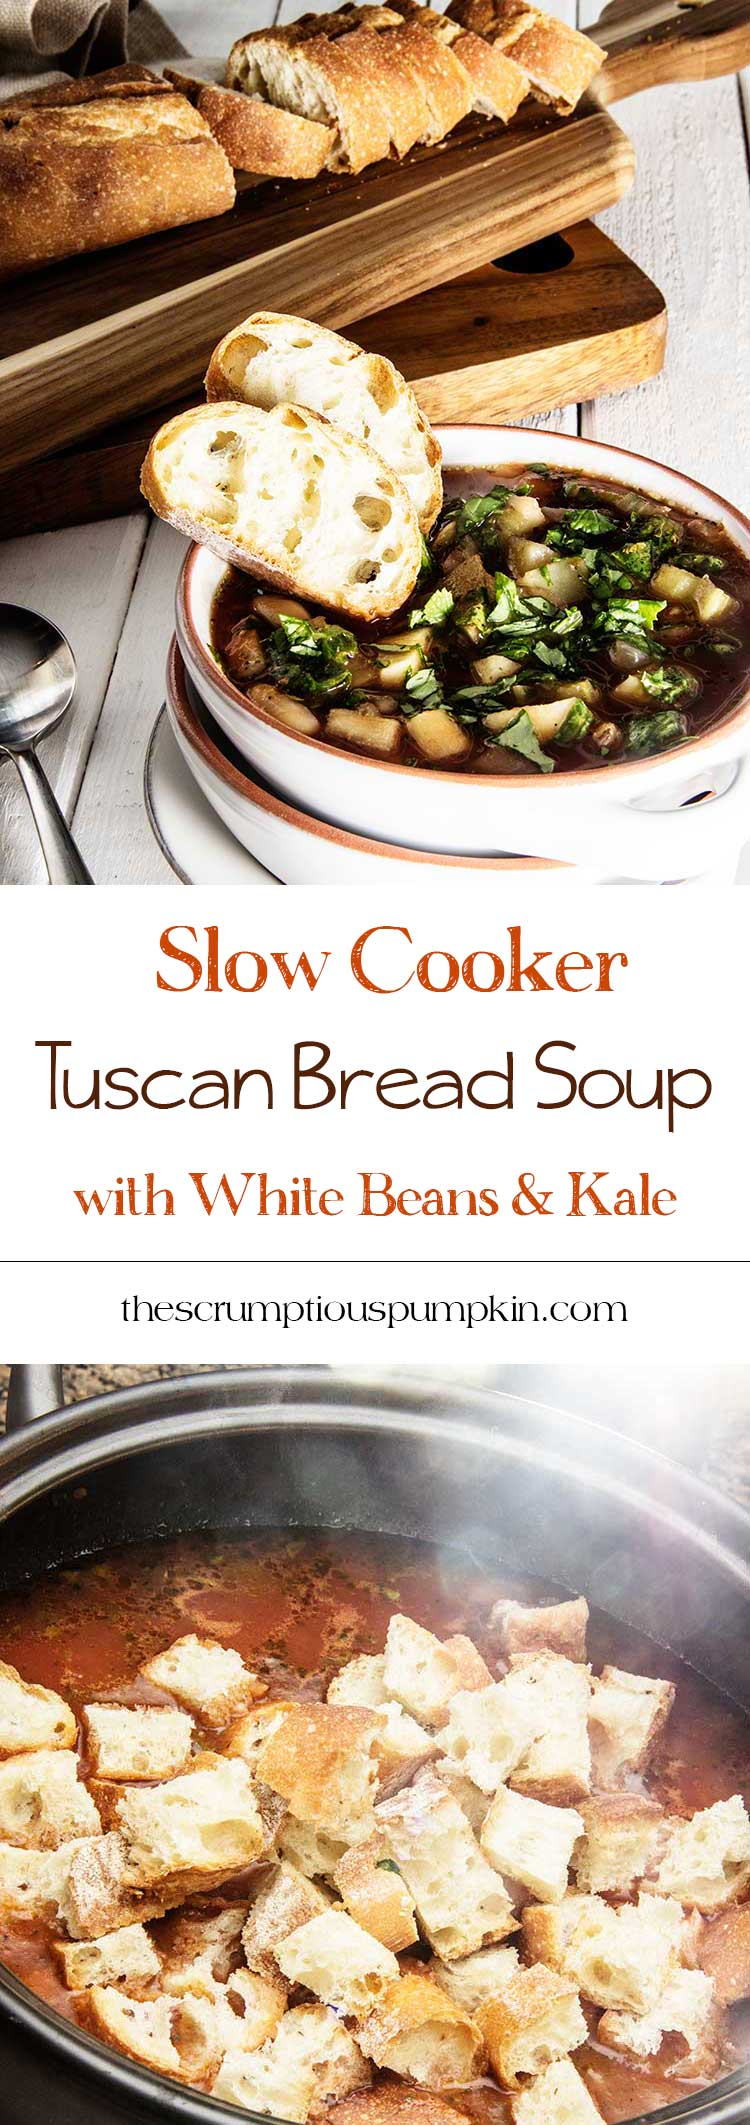 Slow-Cooker-Tuscan-Bread-Soup-with-Kale-and-White-Beans